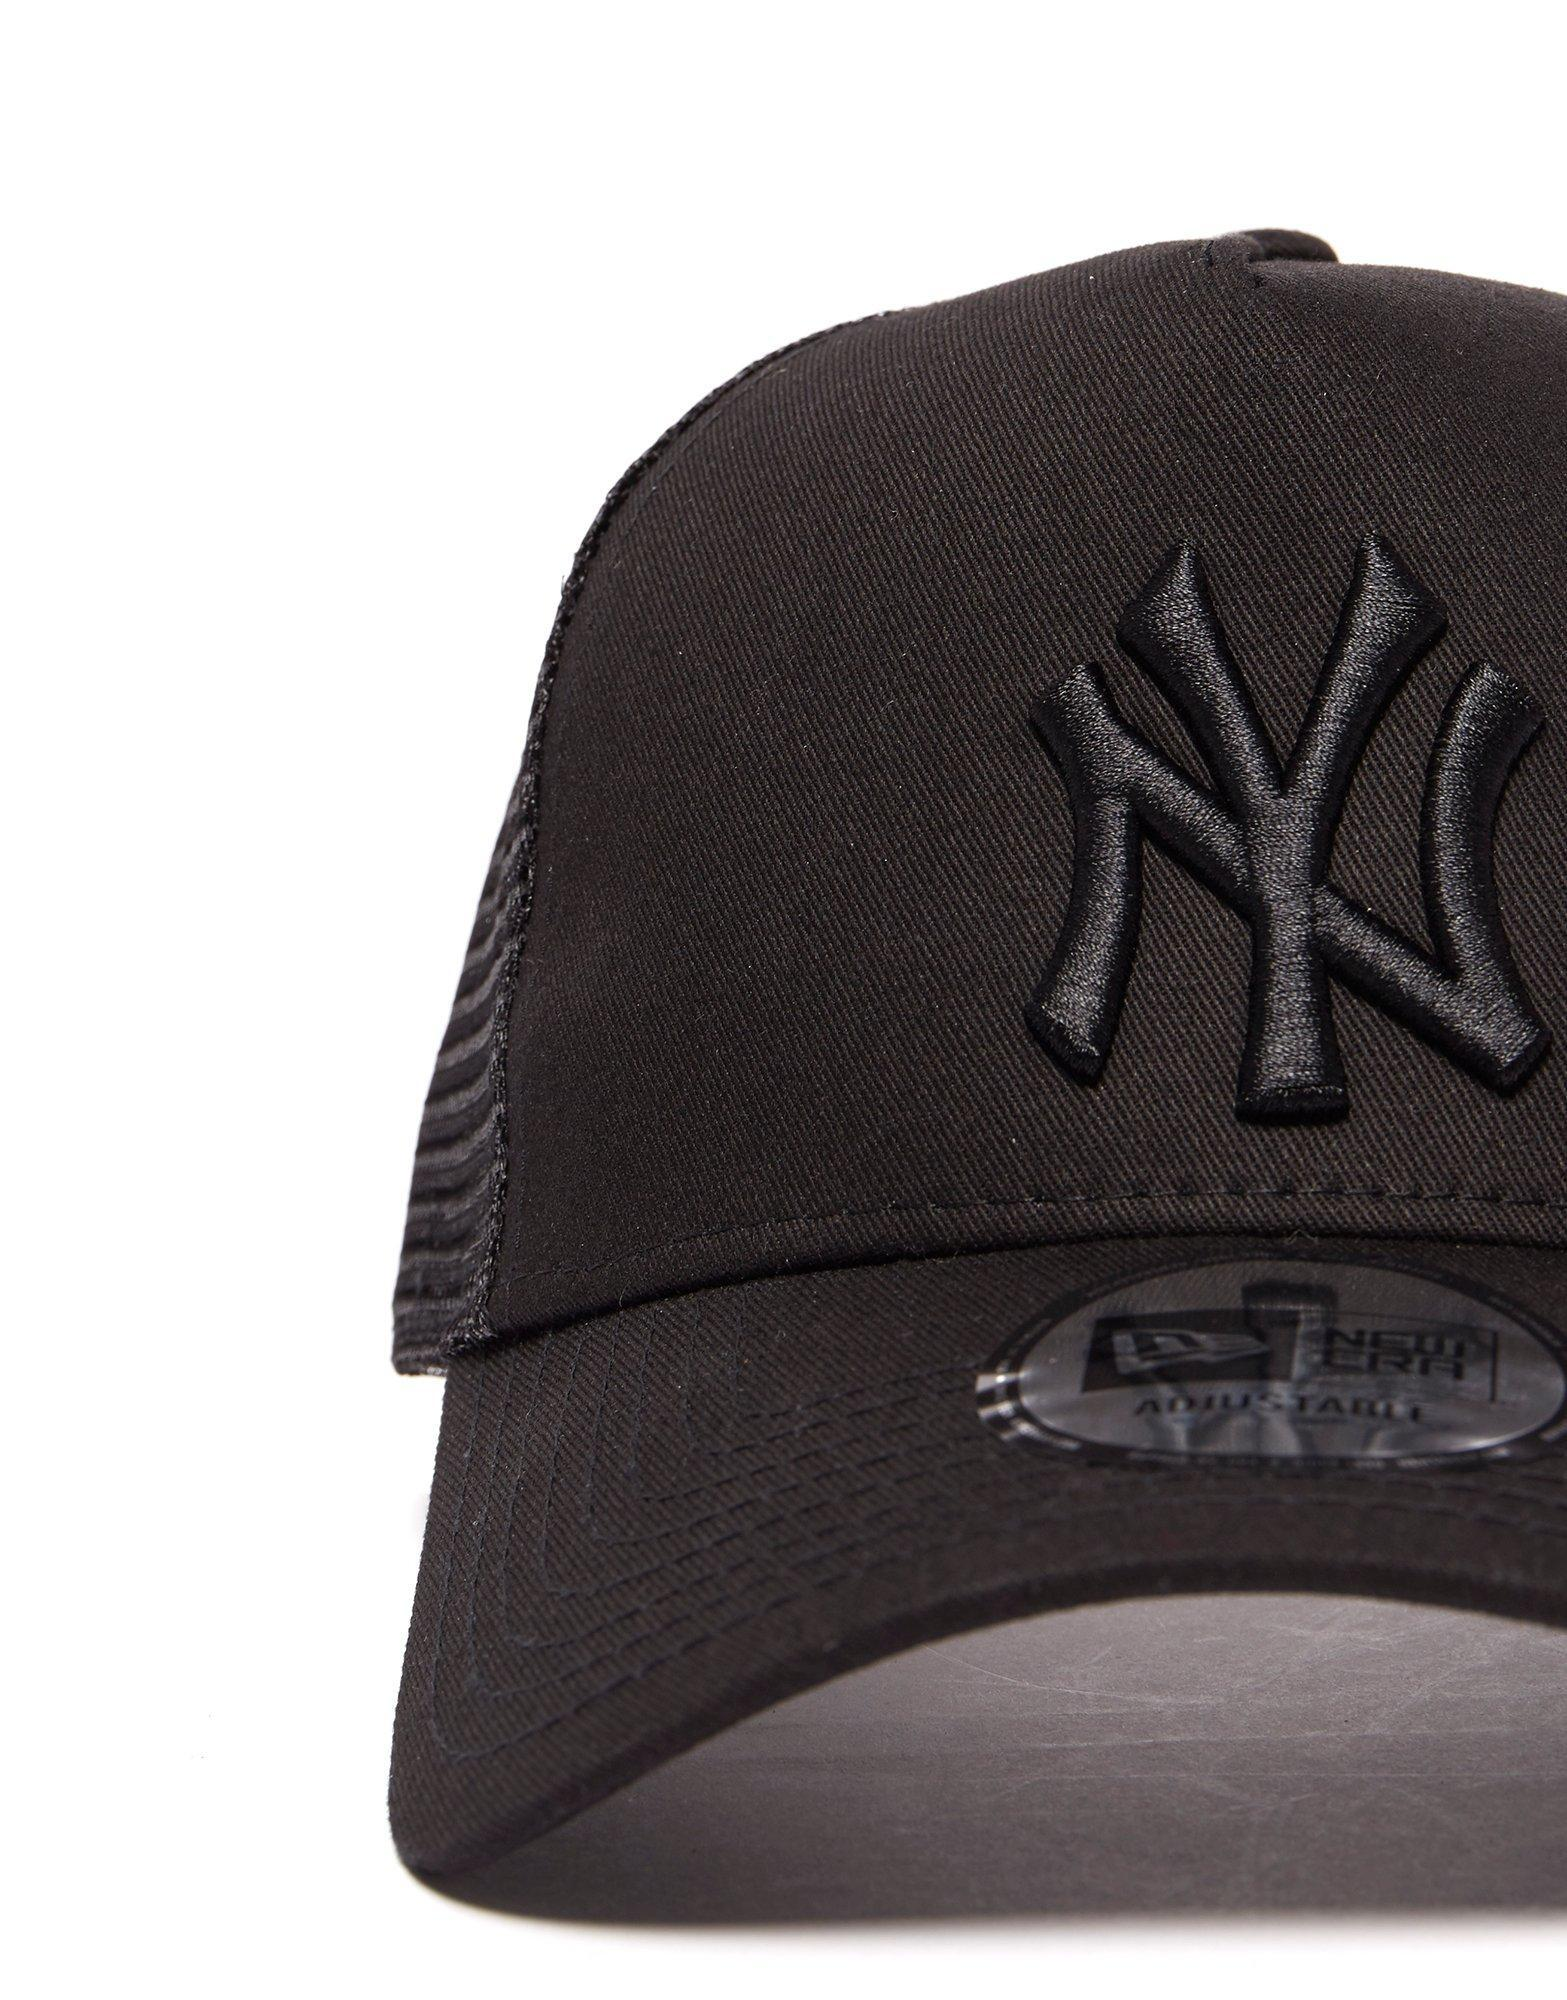 Ktz Mlb New York Yankees Snapback Trucker Cap in Black - Lyst d4d5b7efb82